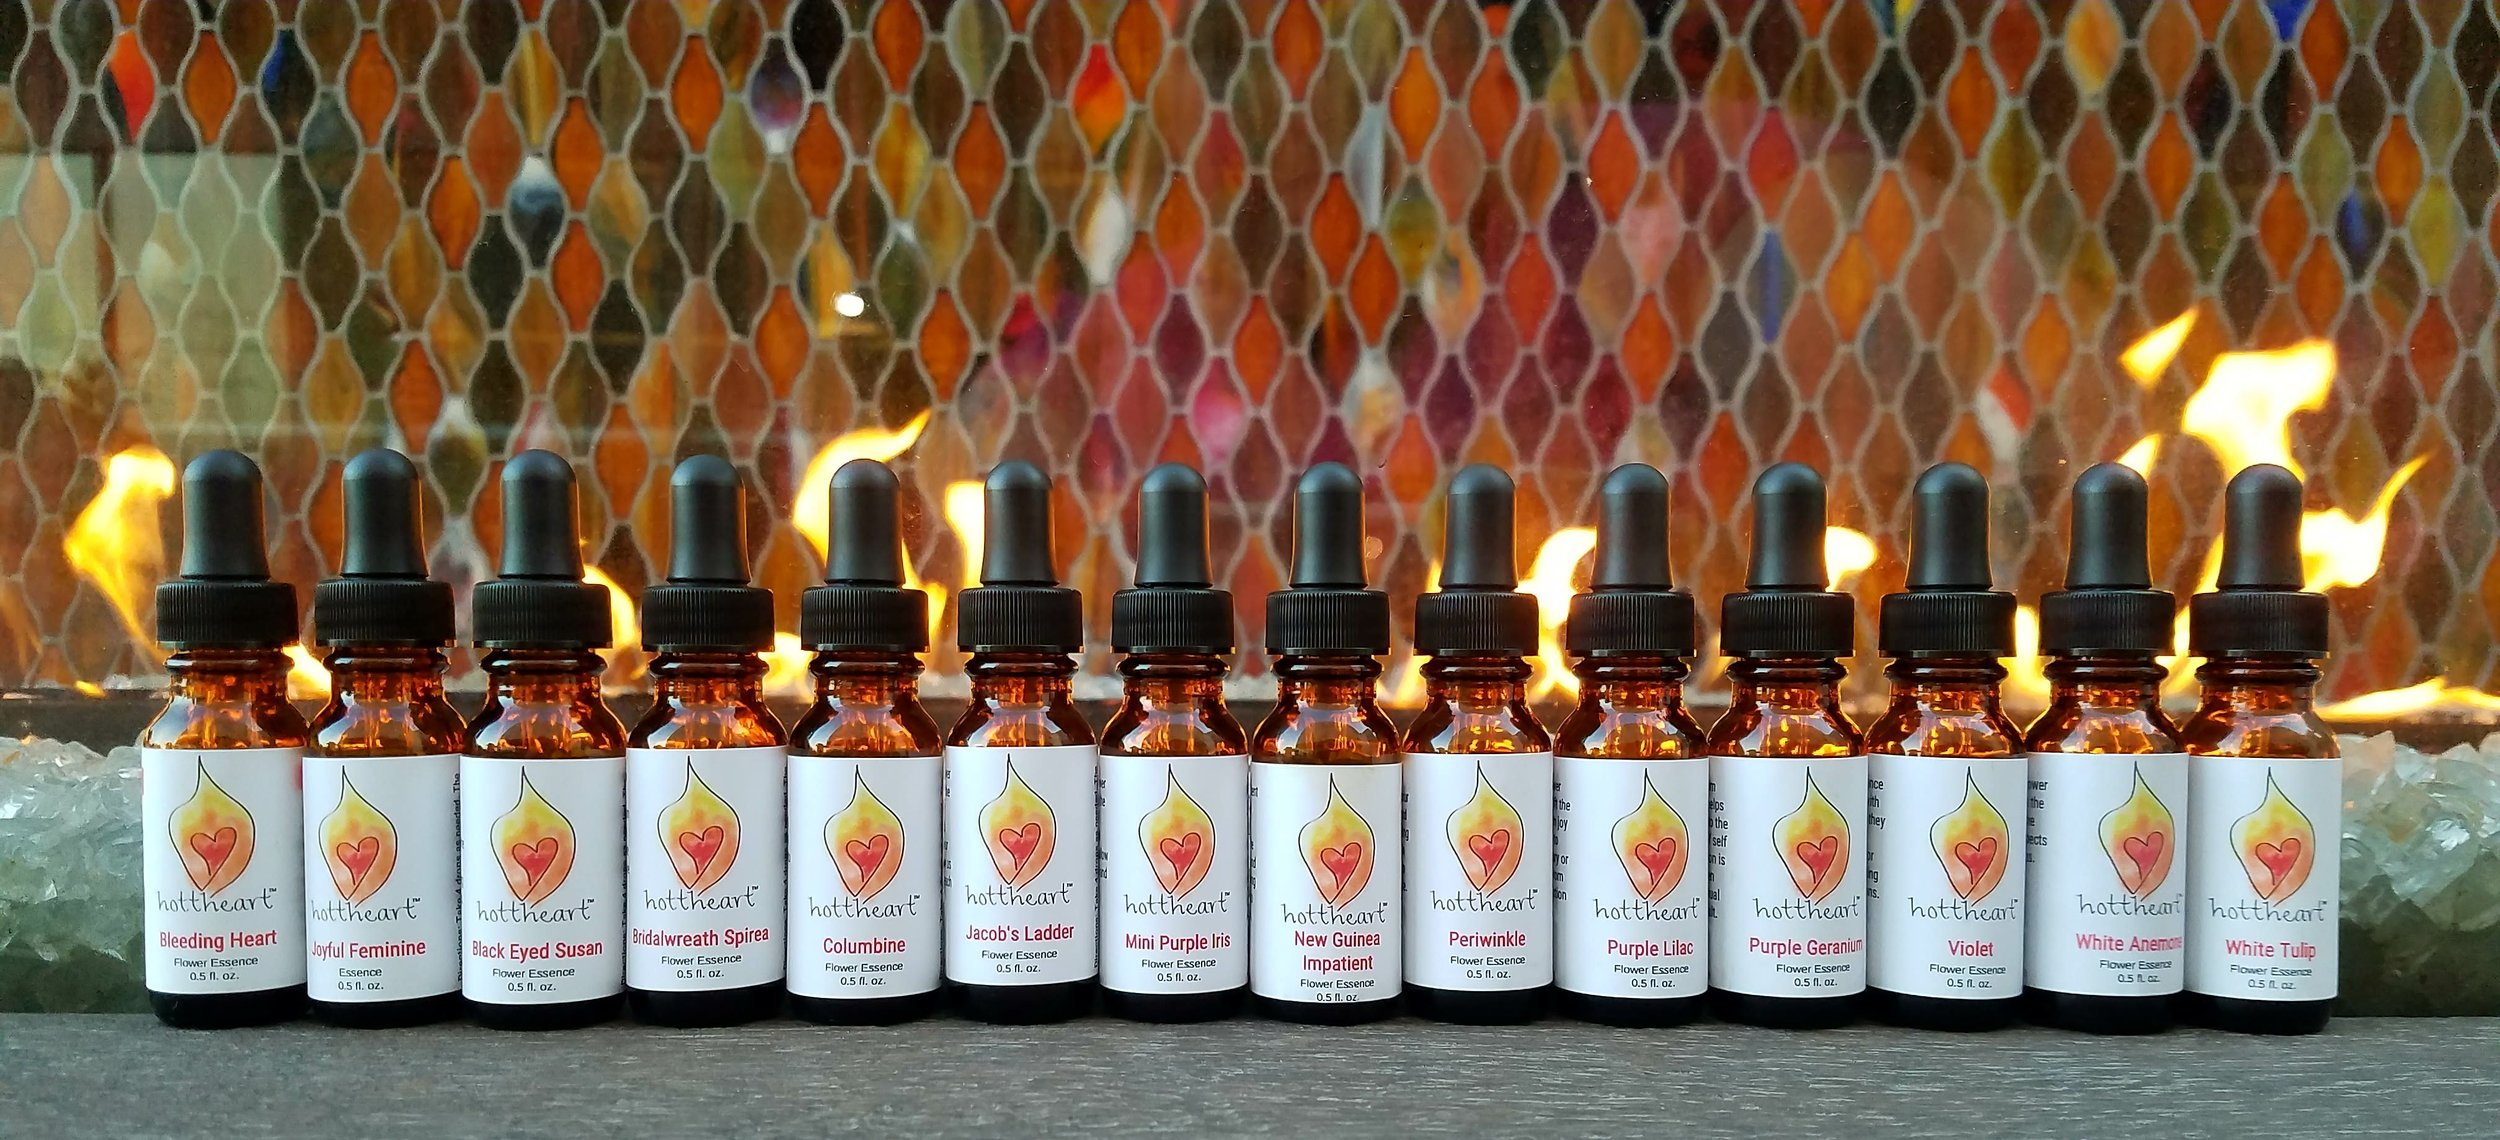 hottheart essence collection -